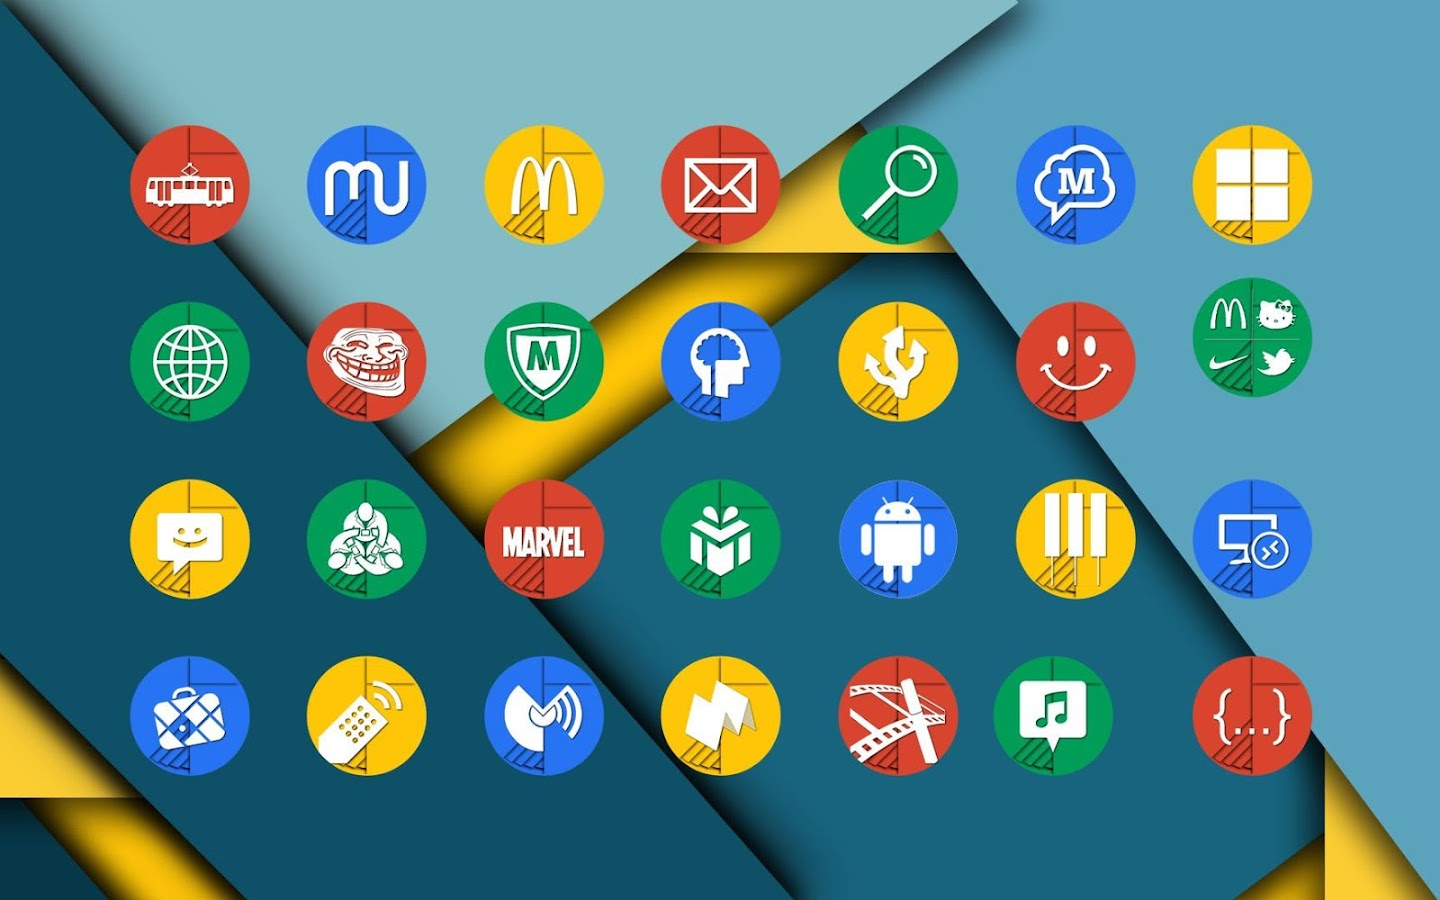 Best icon pack material design : Metronome youtube 120 200